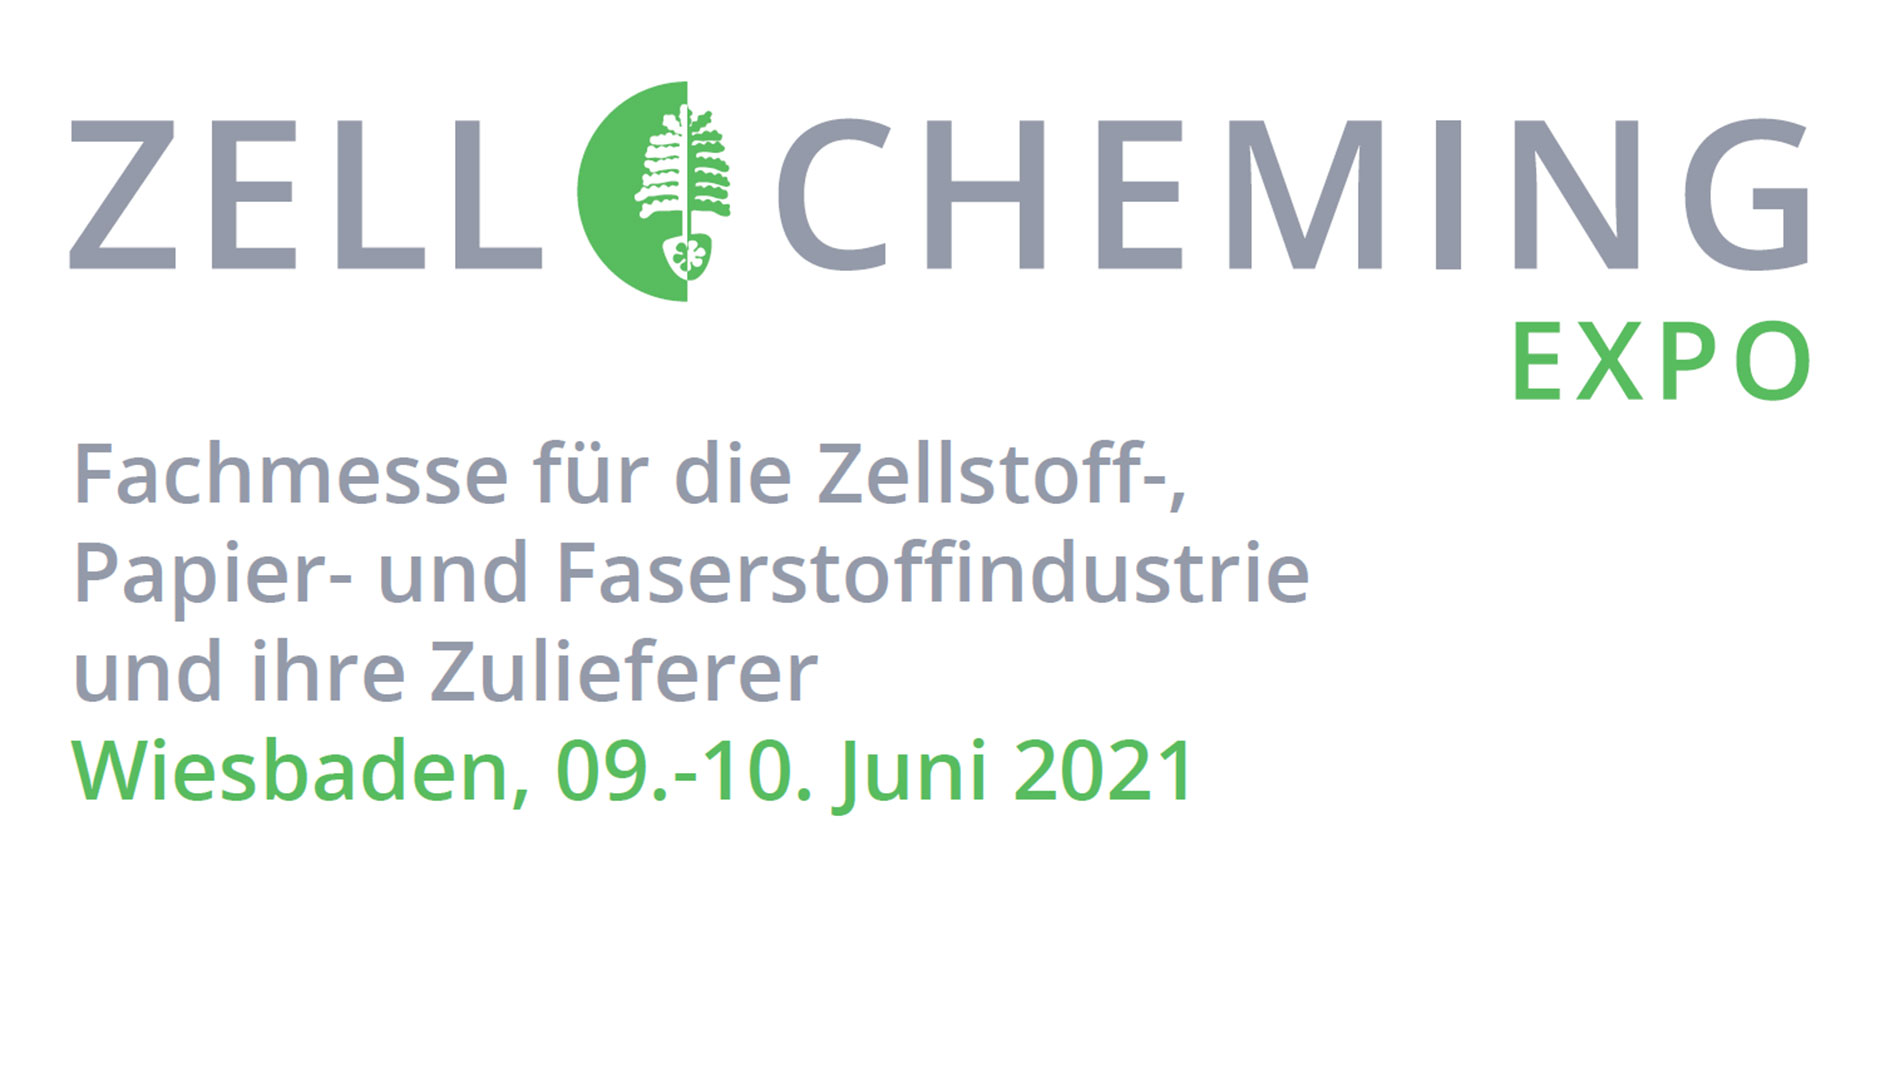 Logo der ZELLCHEMING Expo